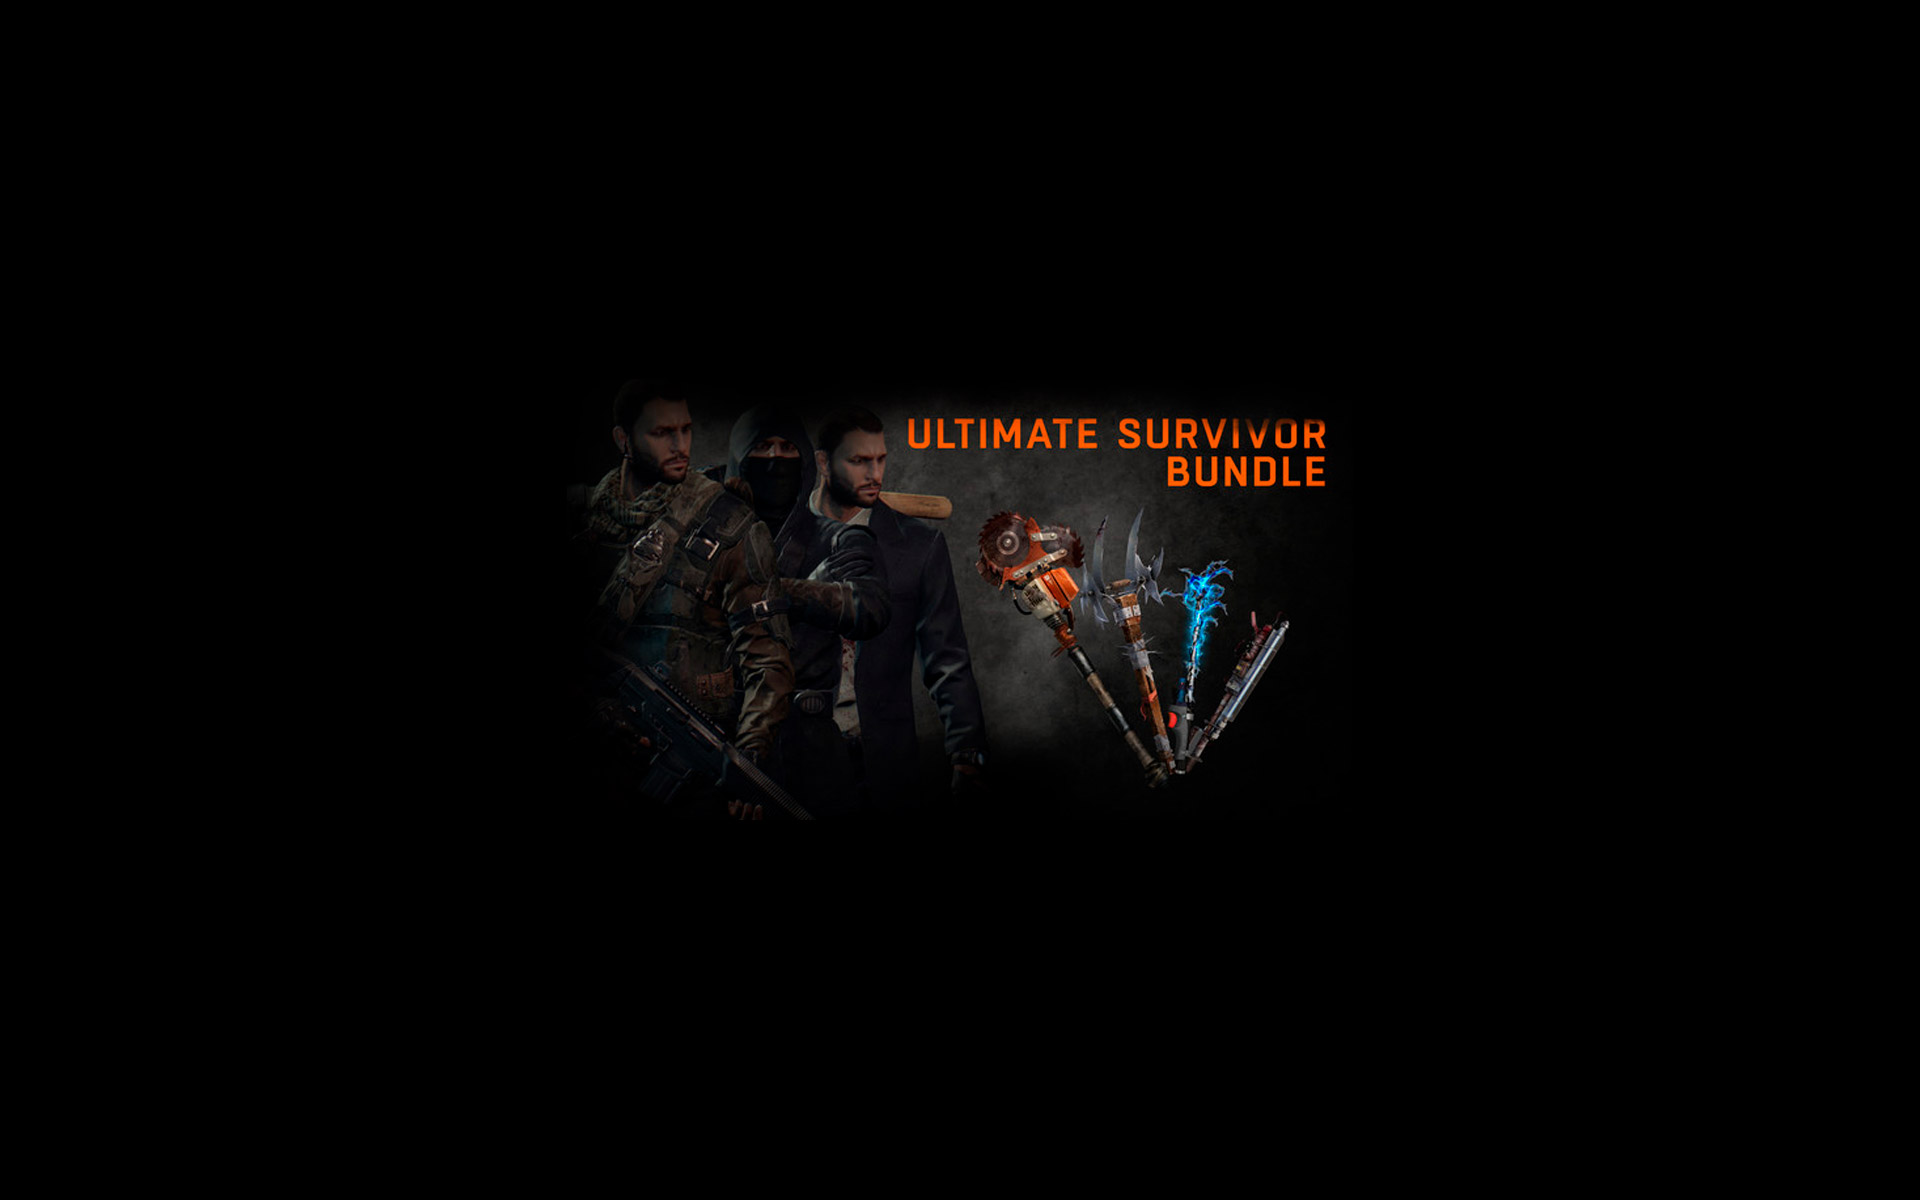 Dying Light - Ultimate Survivor Bundle (DLC) cover